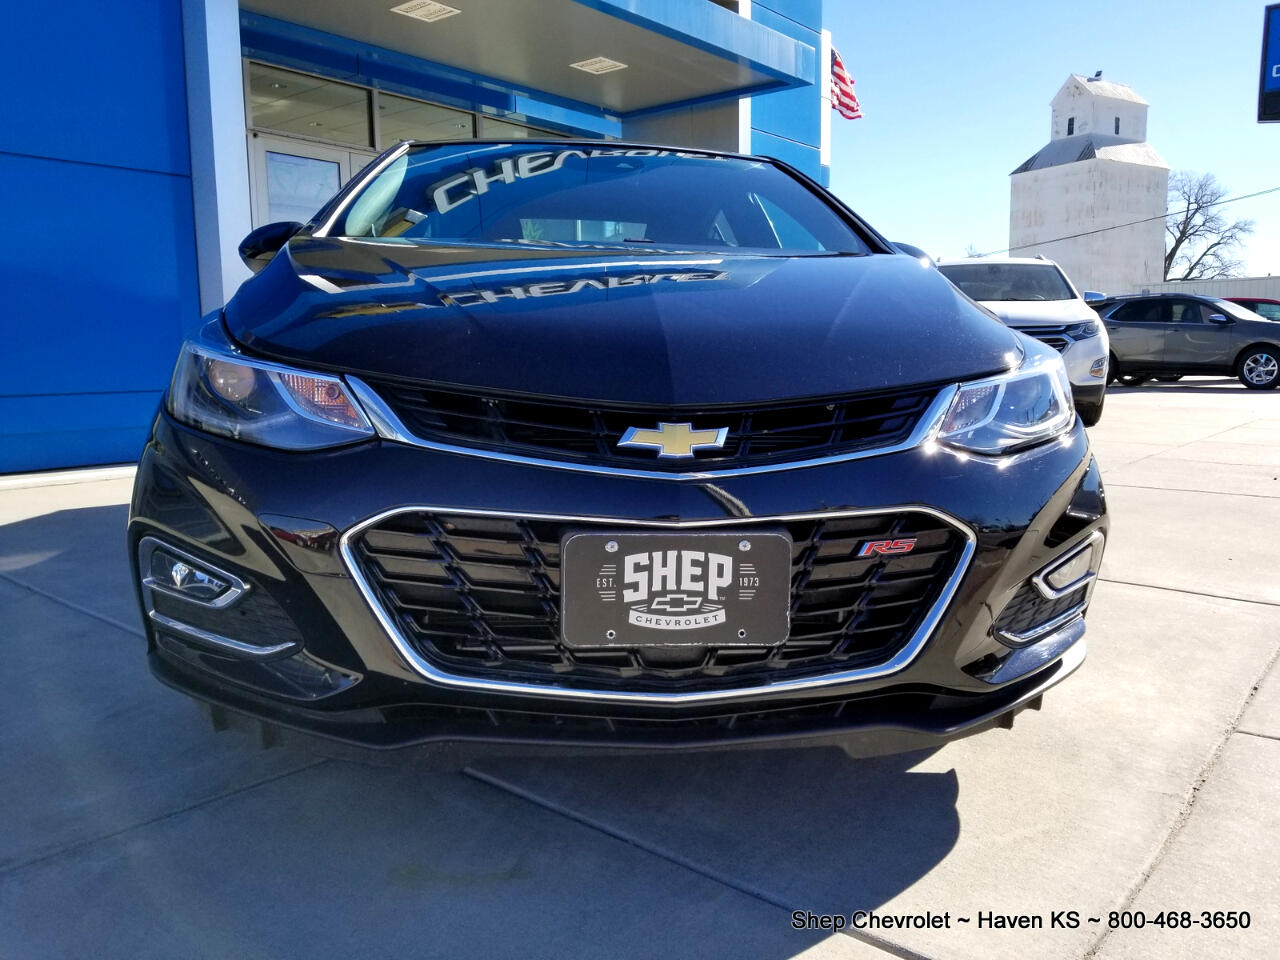 2017 Chevrolet Cruze Premier 1.4 Liter Turbo (DEMO)